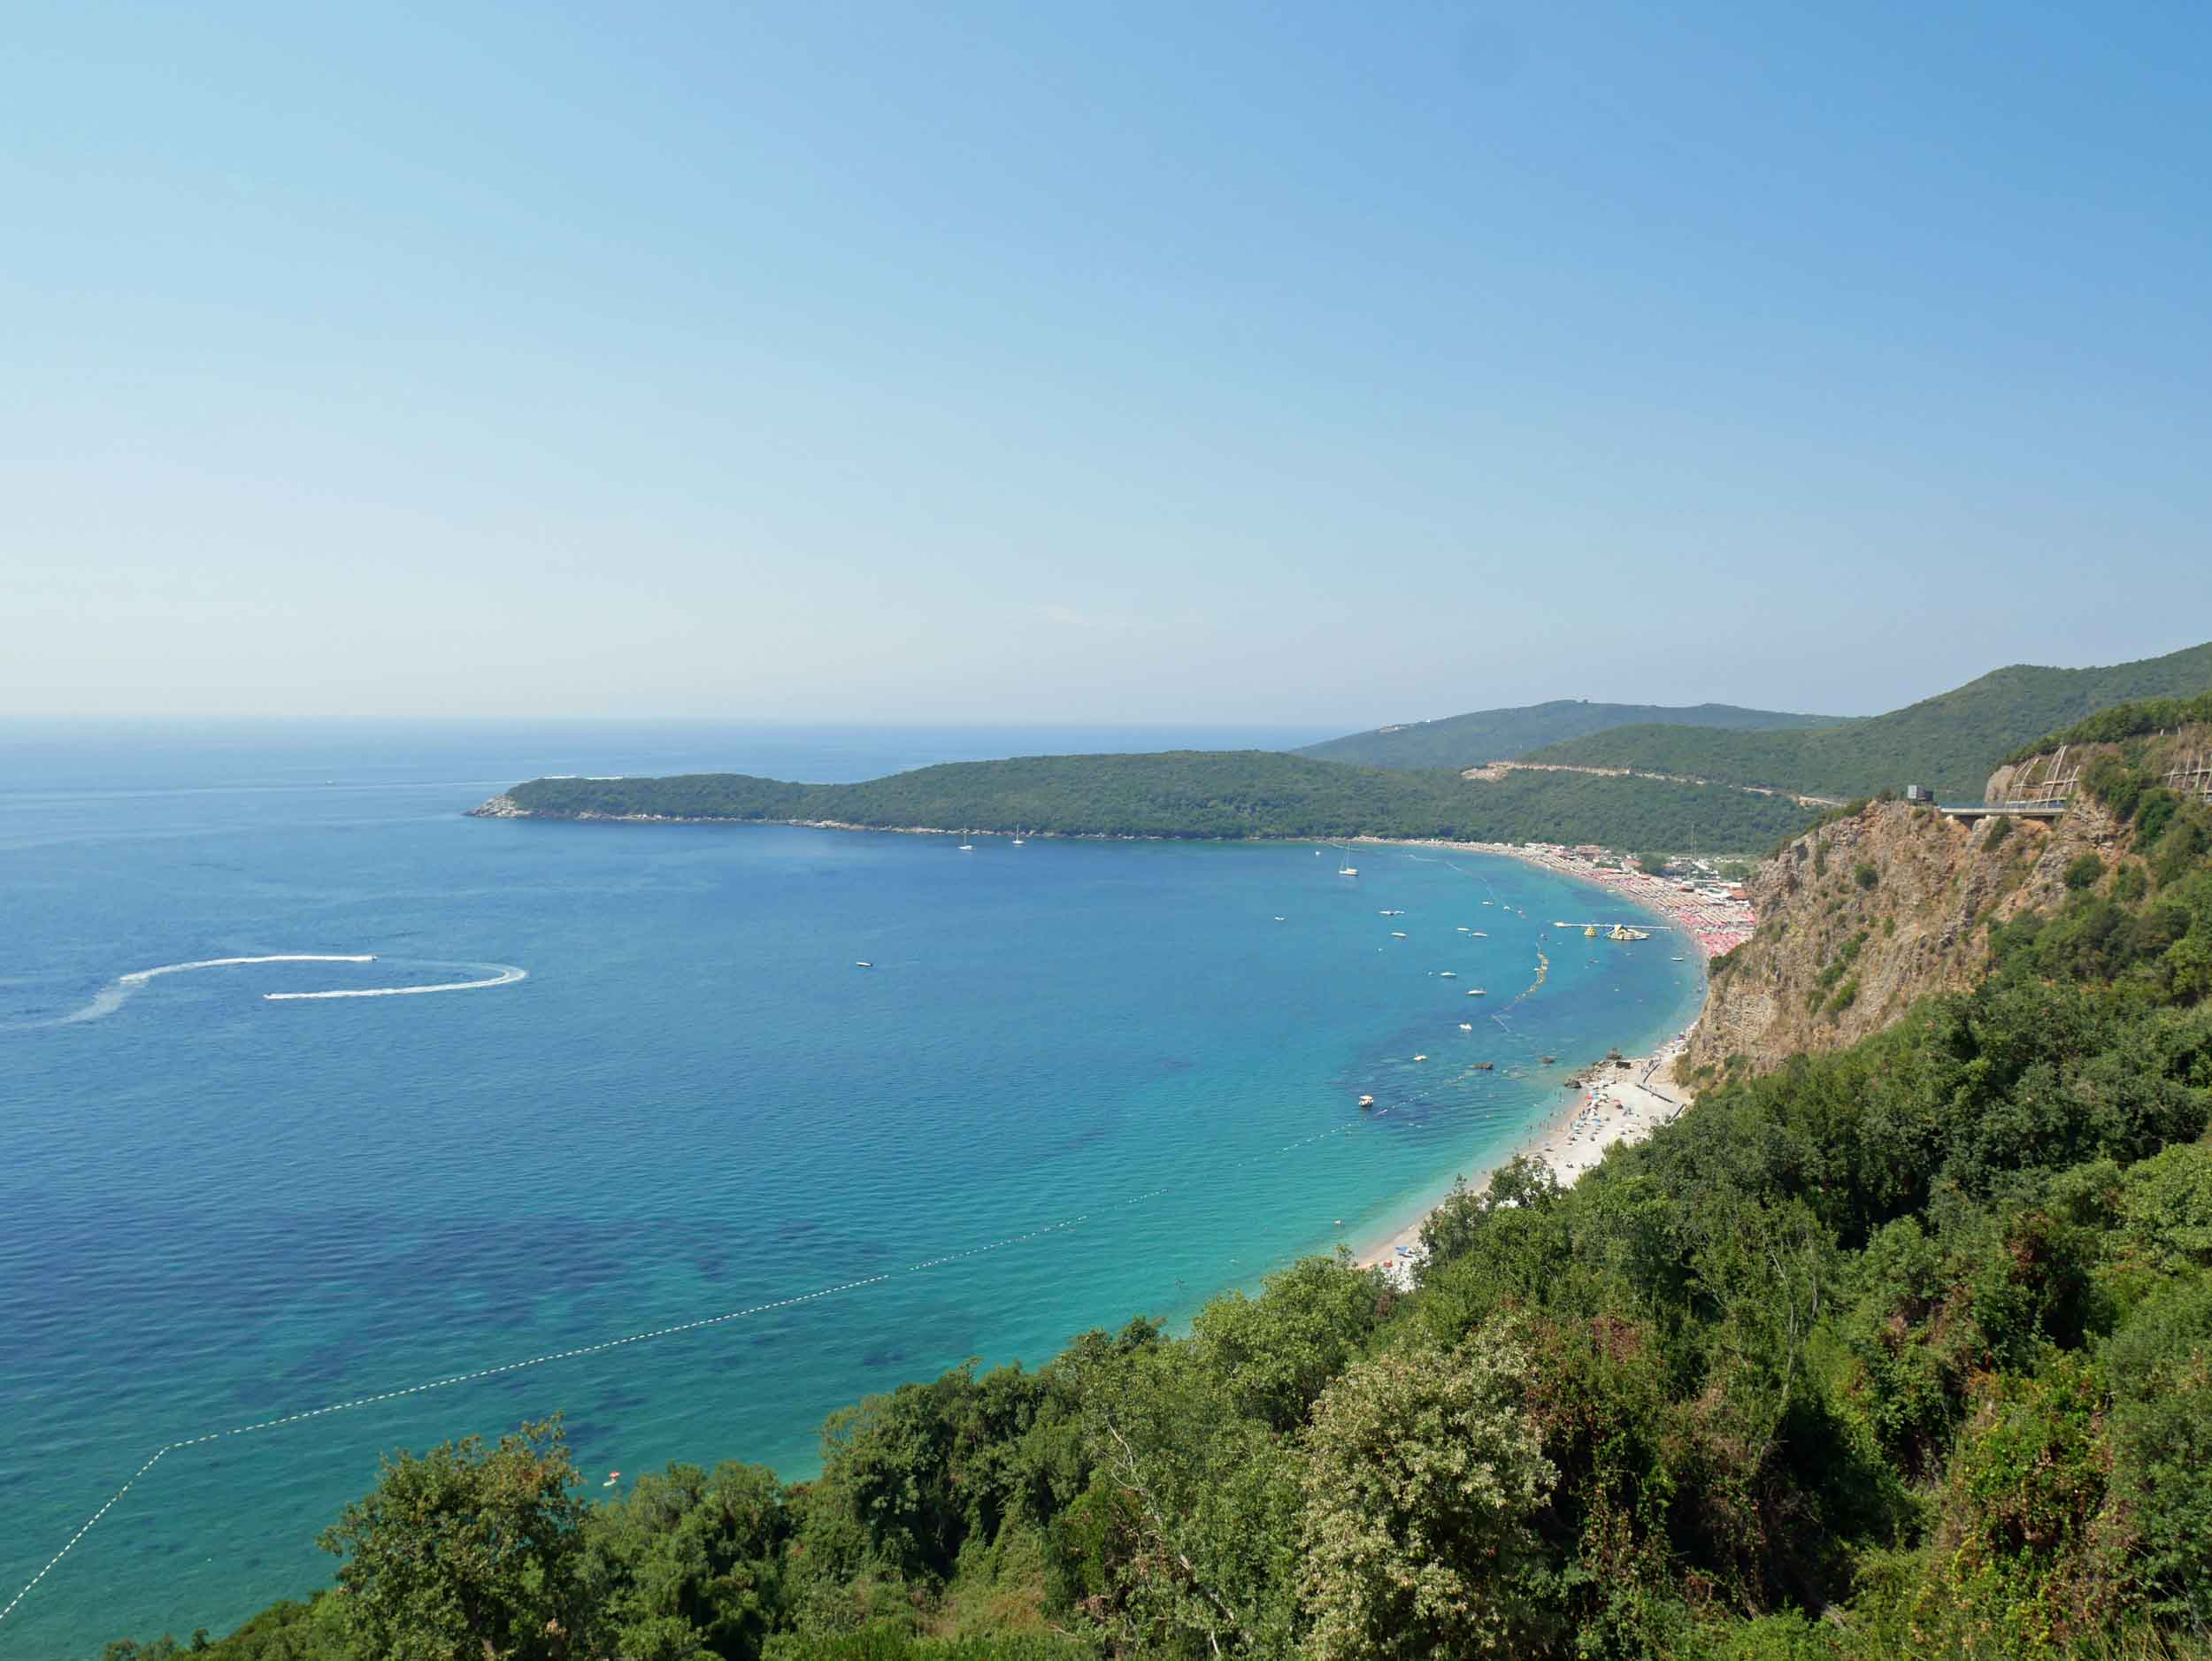 The cliffside views overlooking Montenegro's famous Jaz Beach (Aug 8).